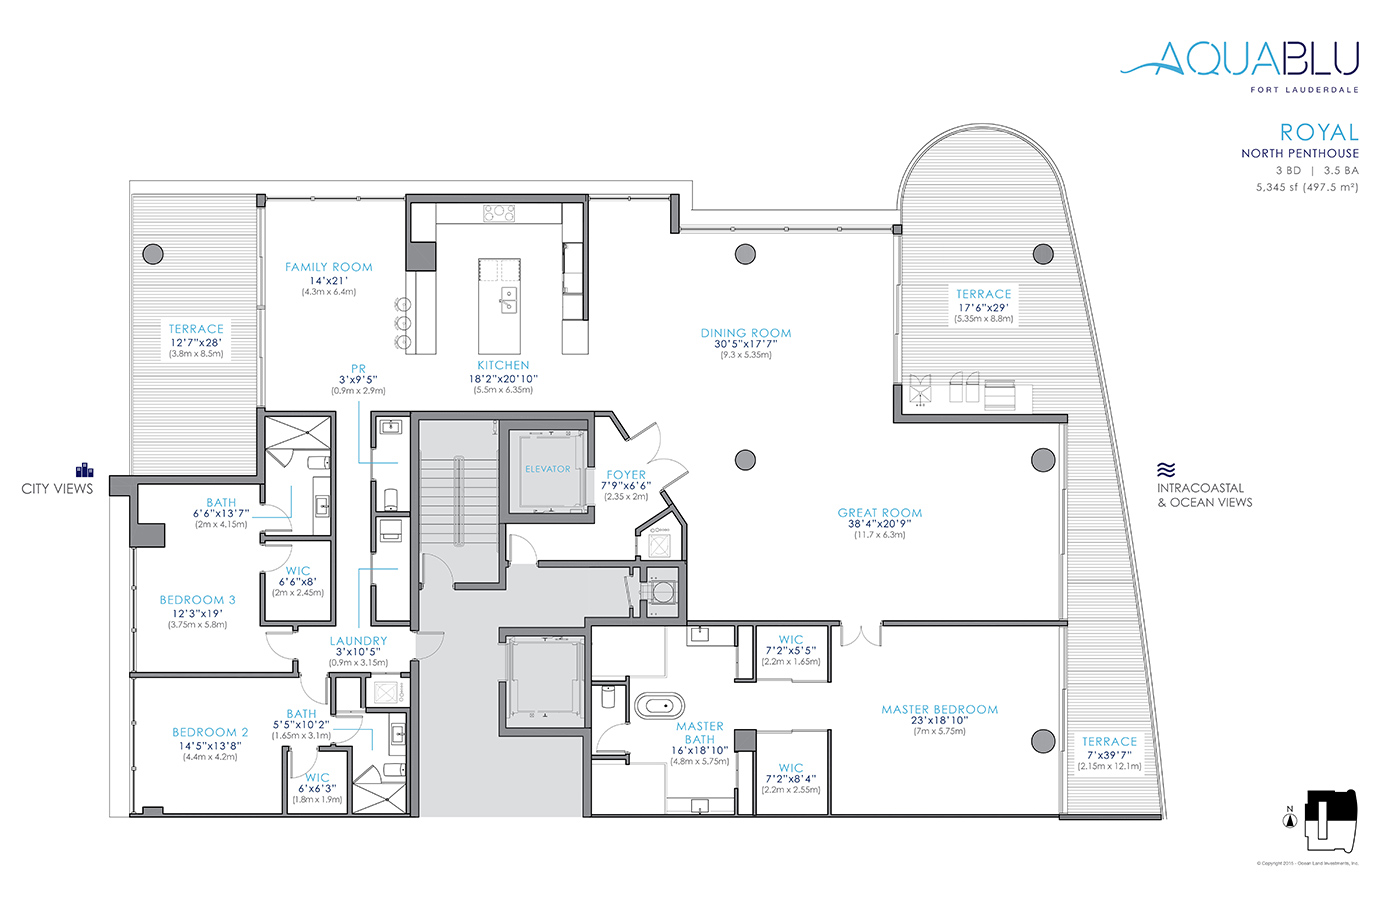 AquaBlu - Floorplan 4